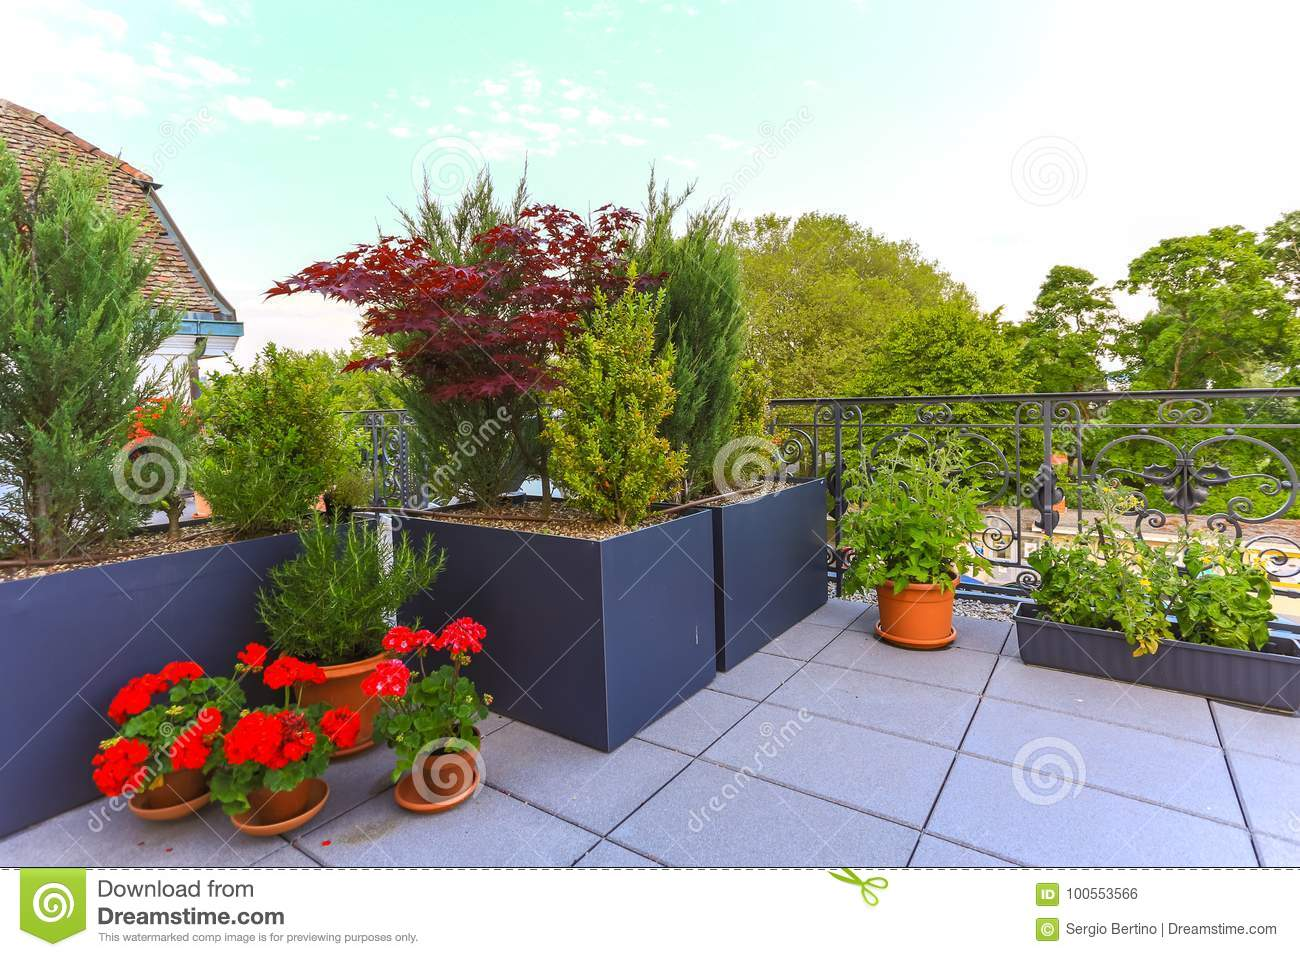 Decorative Potted Plants Growing On A Patio